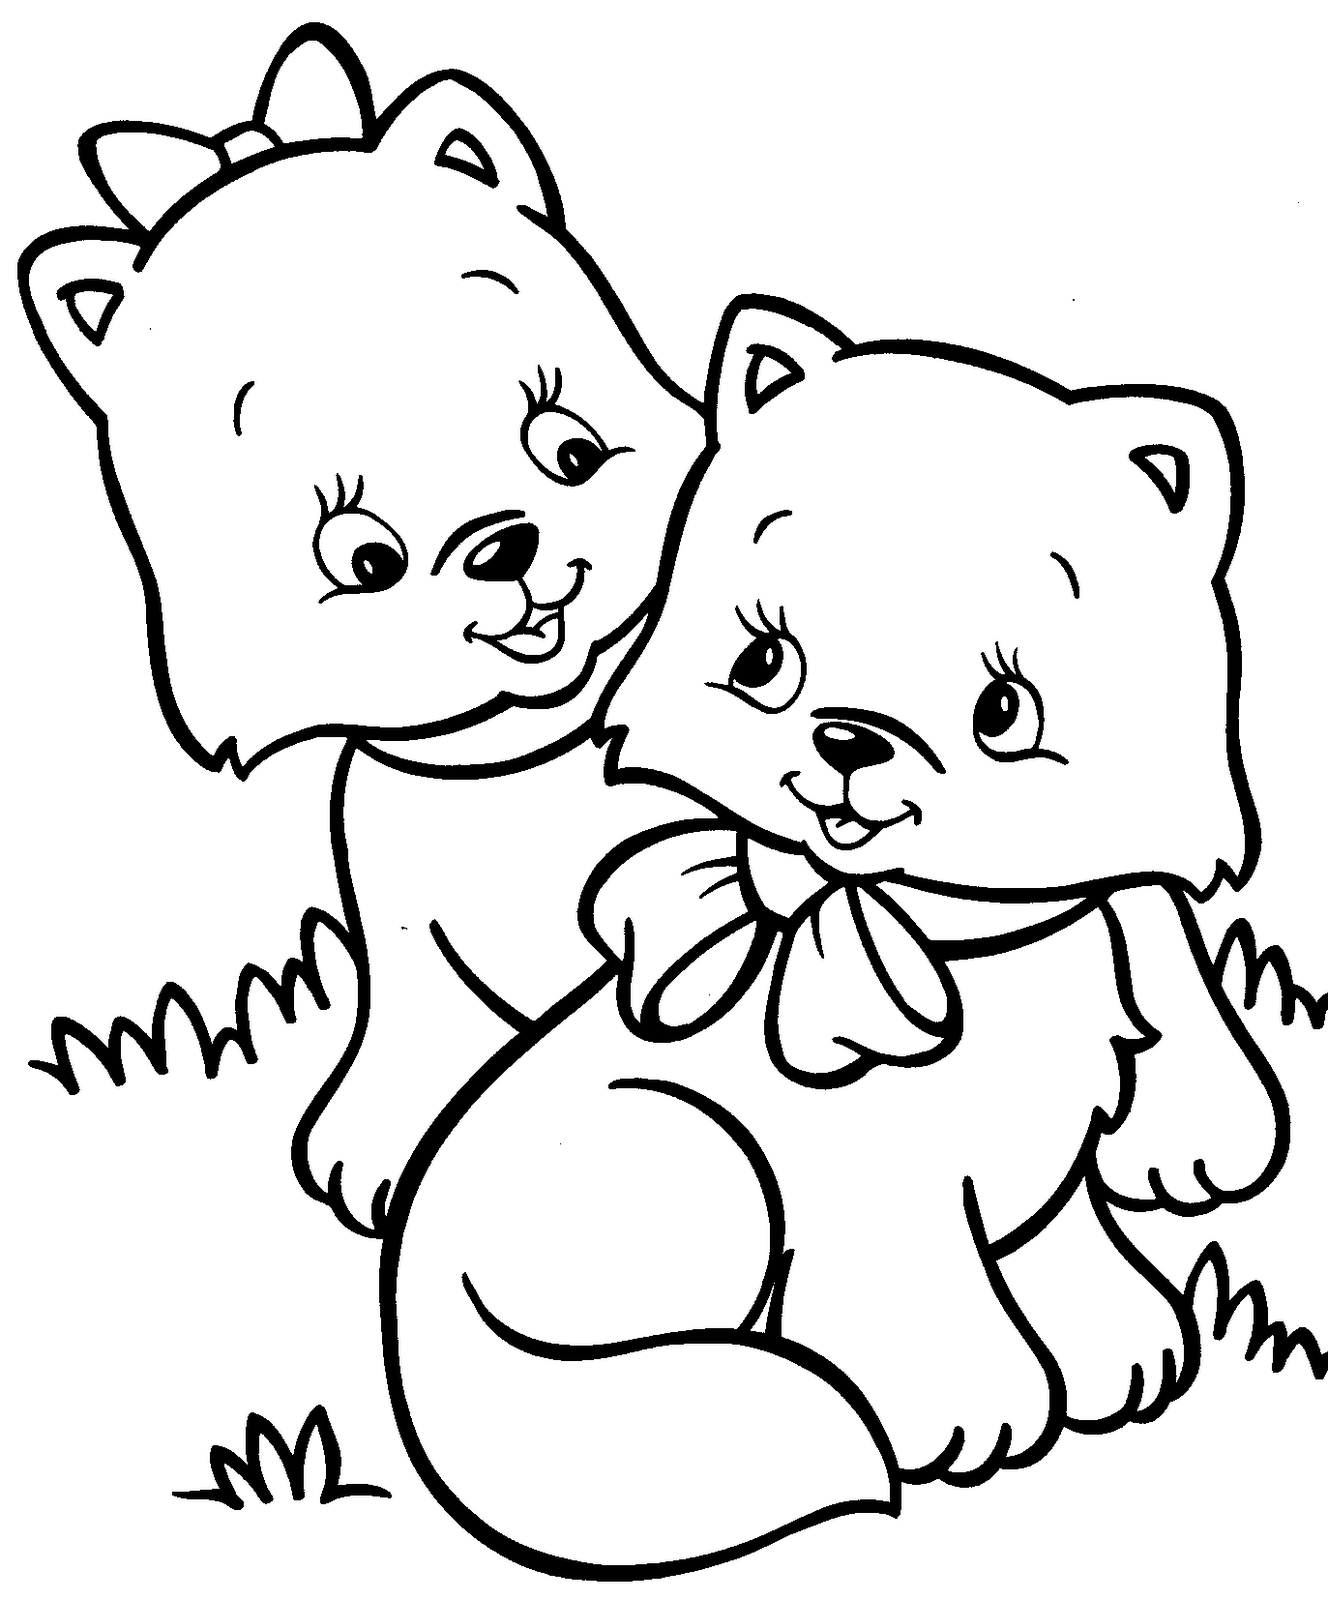 Free Printable Kitten Coloring Pages : printable, kitten, coloring, pages, Kitten, Coloring, Pages